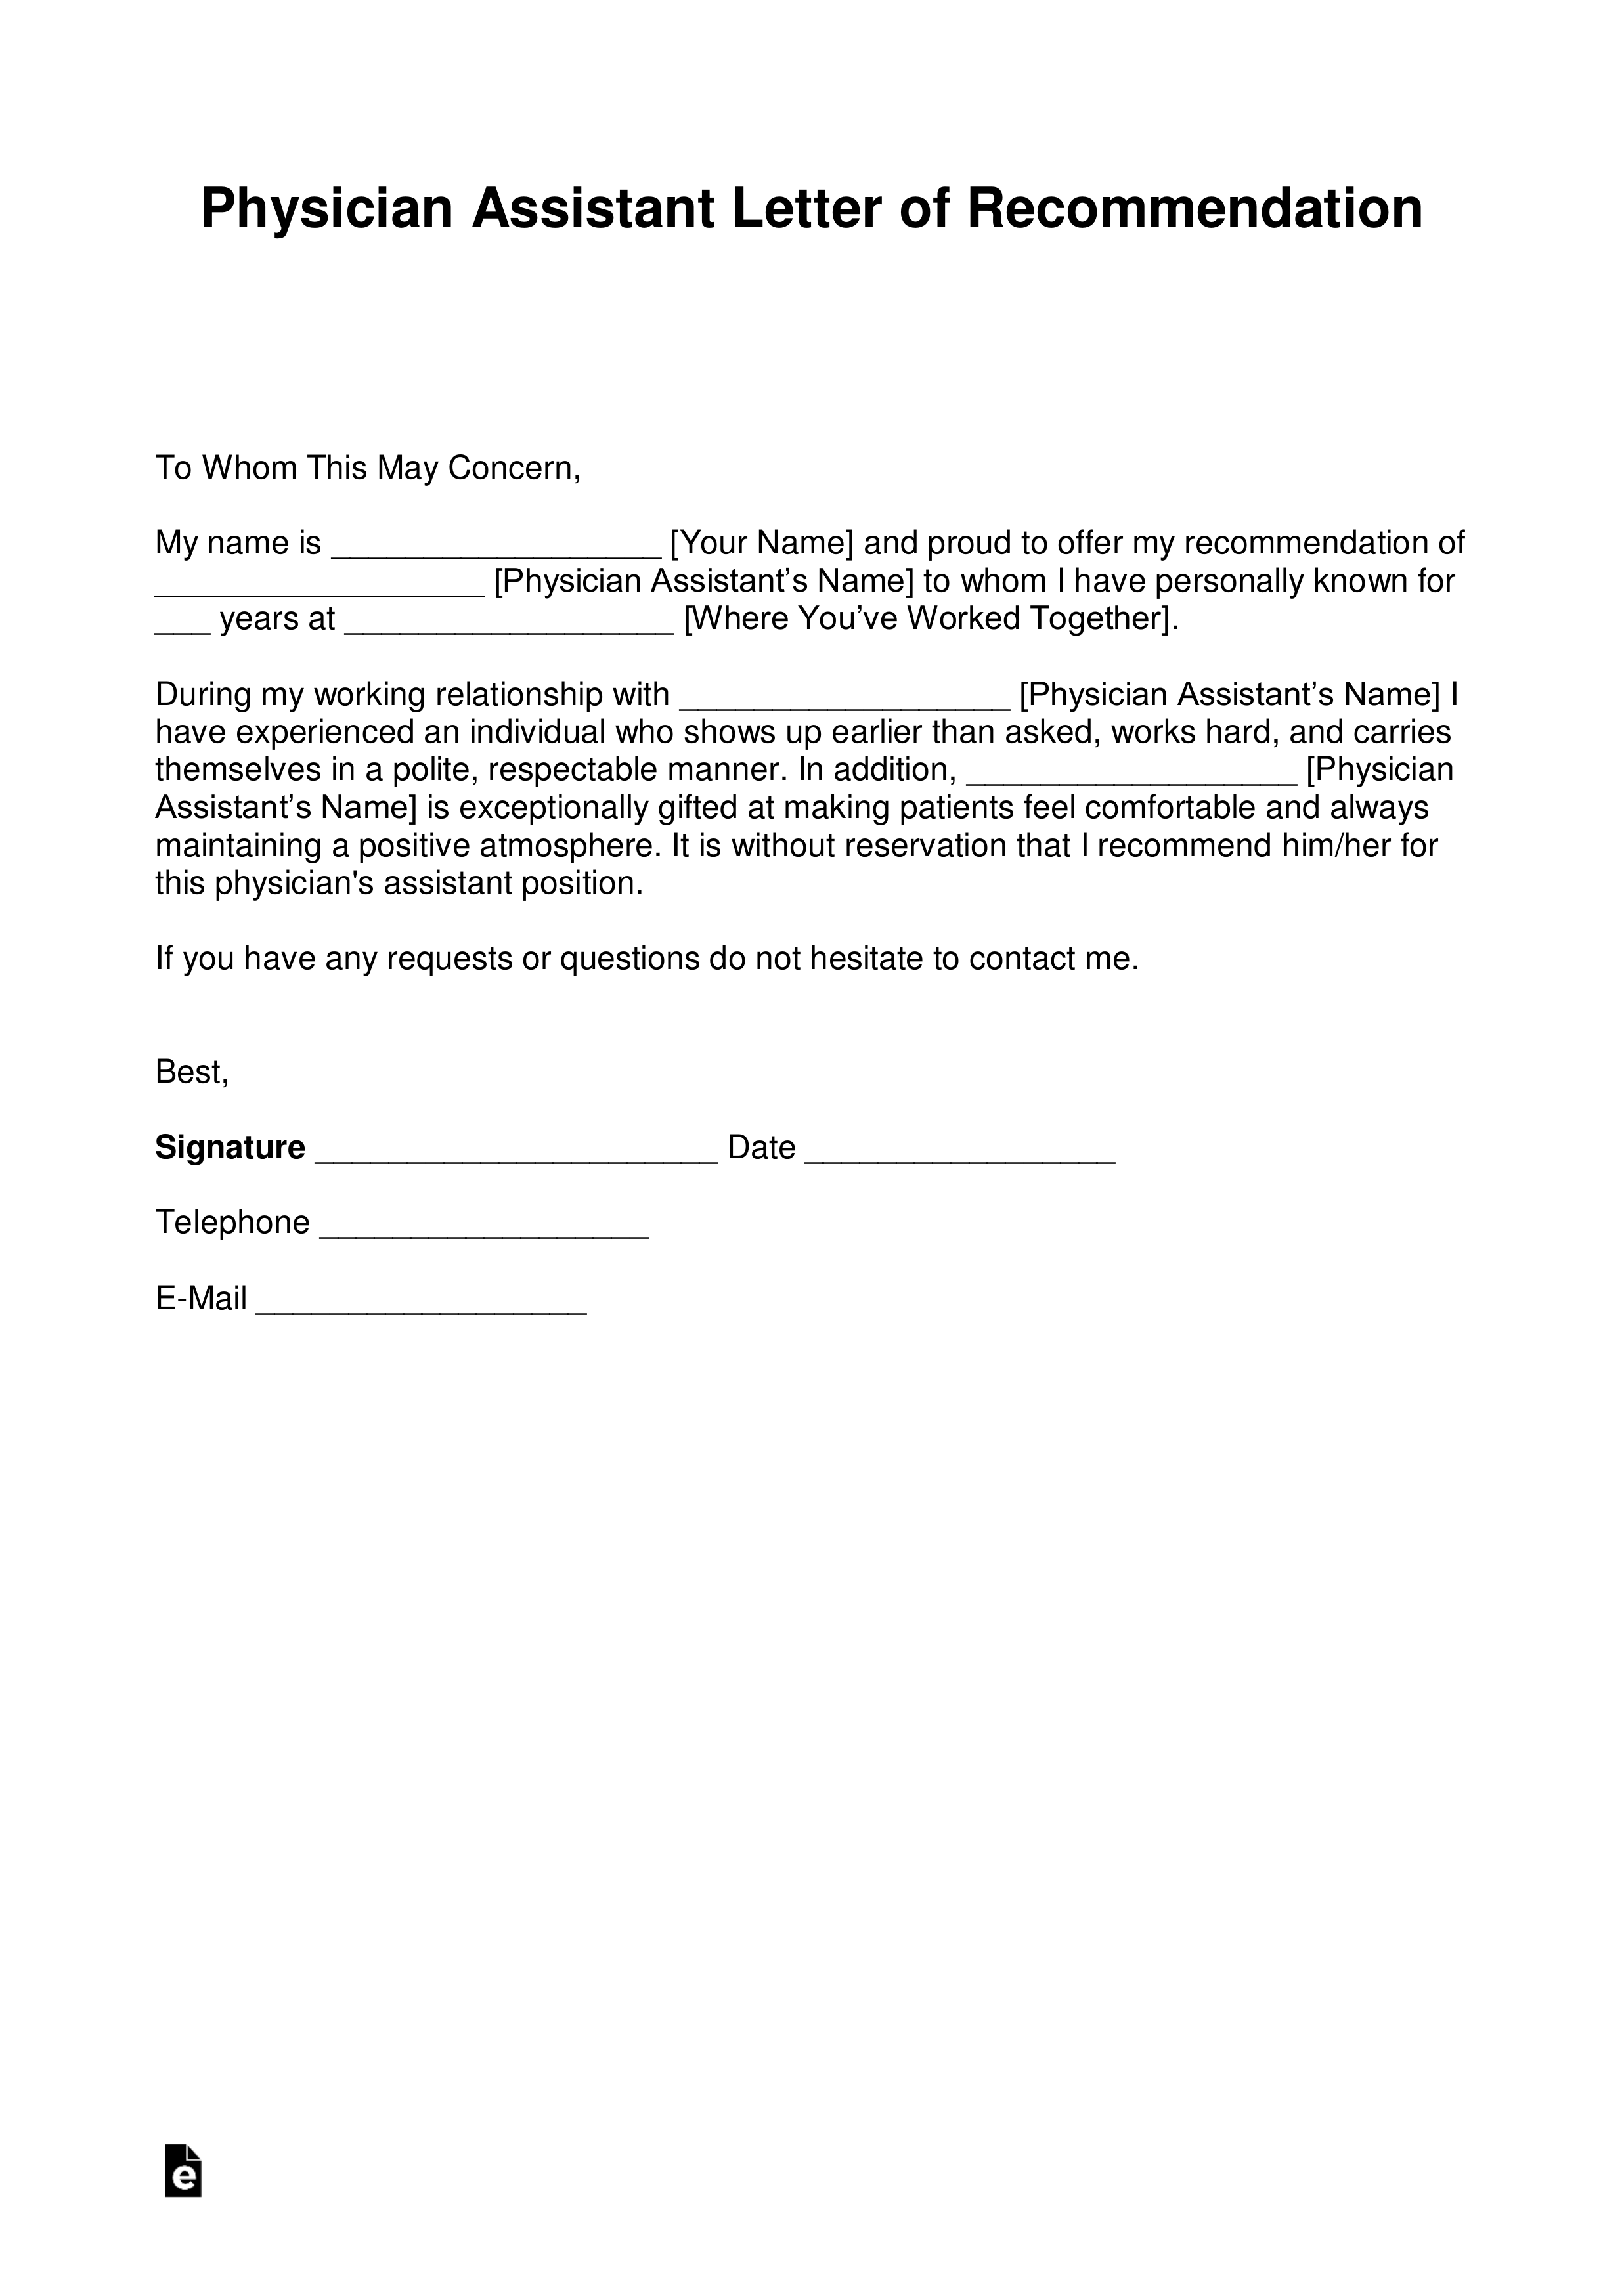 Free Physician Assistant Letter of Recommendation Template ...